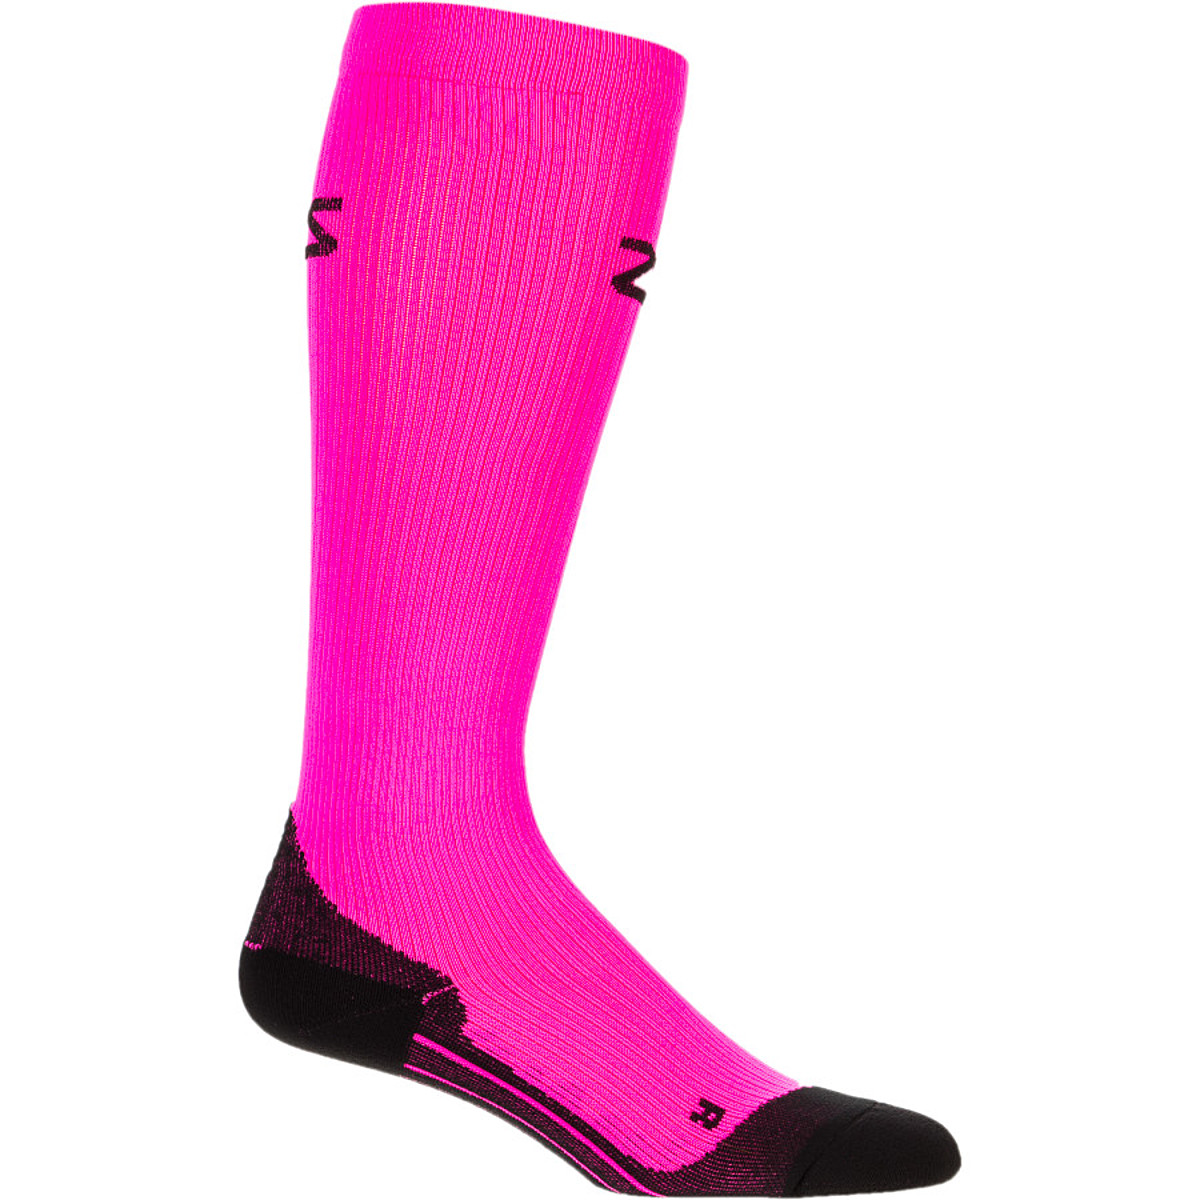 photo of a ZENSAH sock